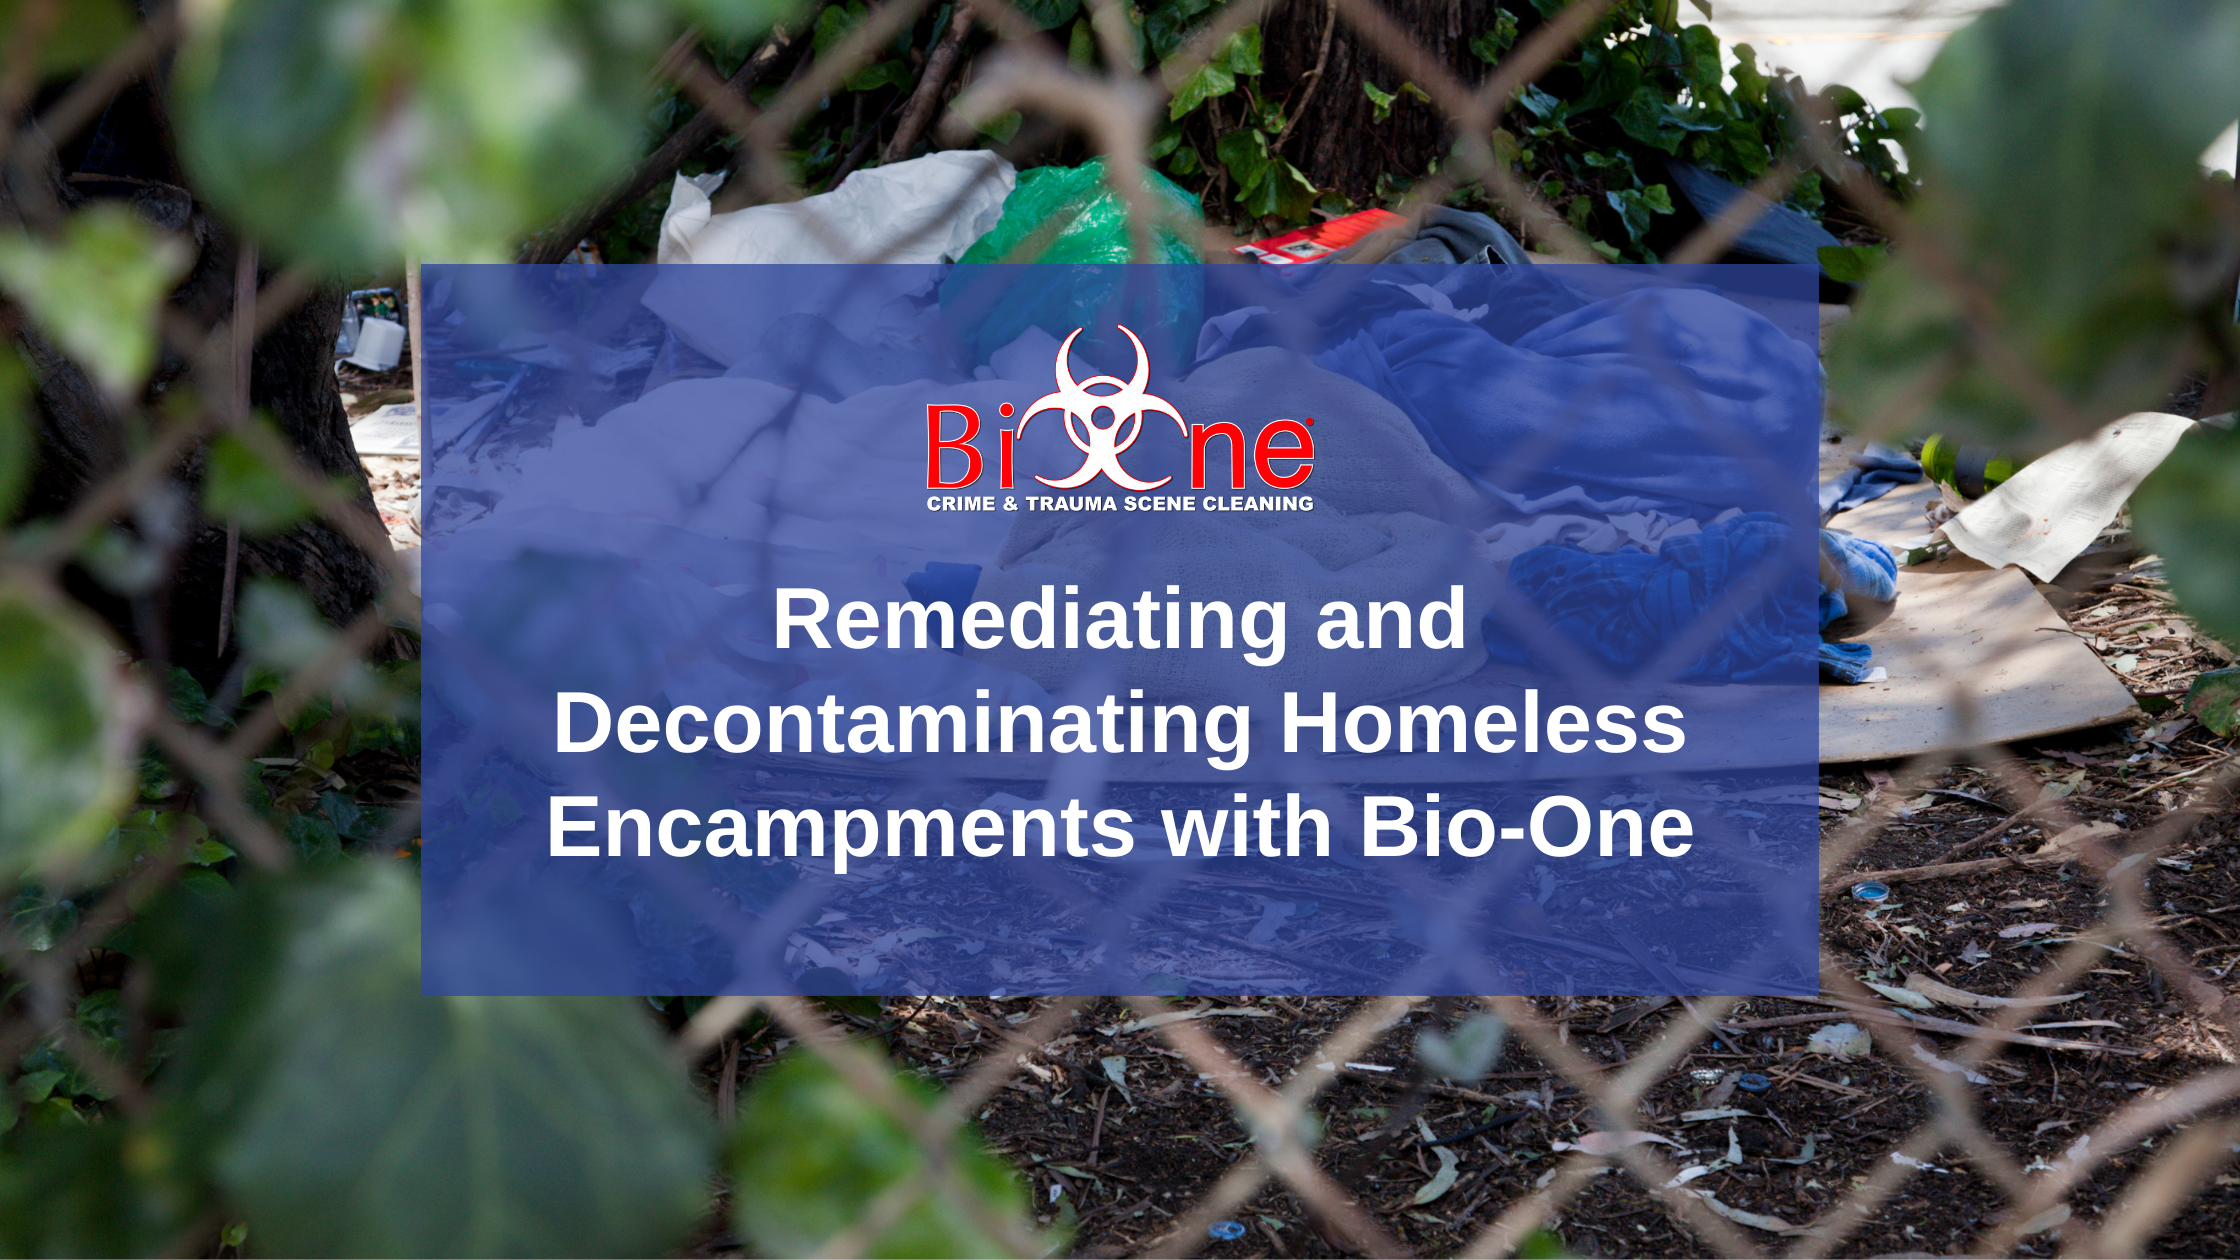 Bio-One Remediating and Decontaminating Homeless Encampments